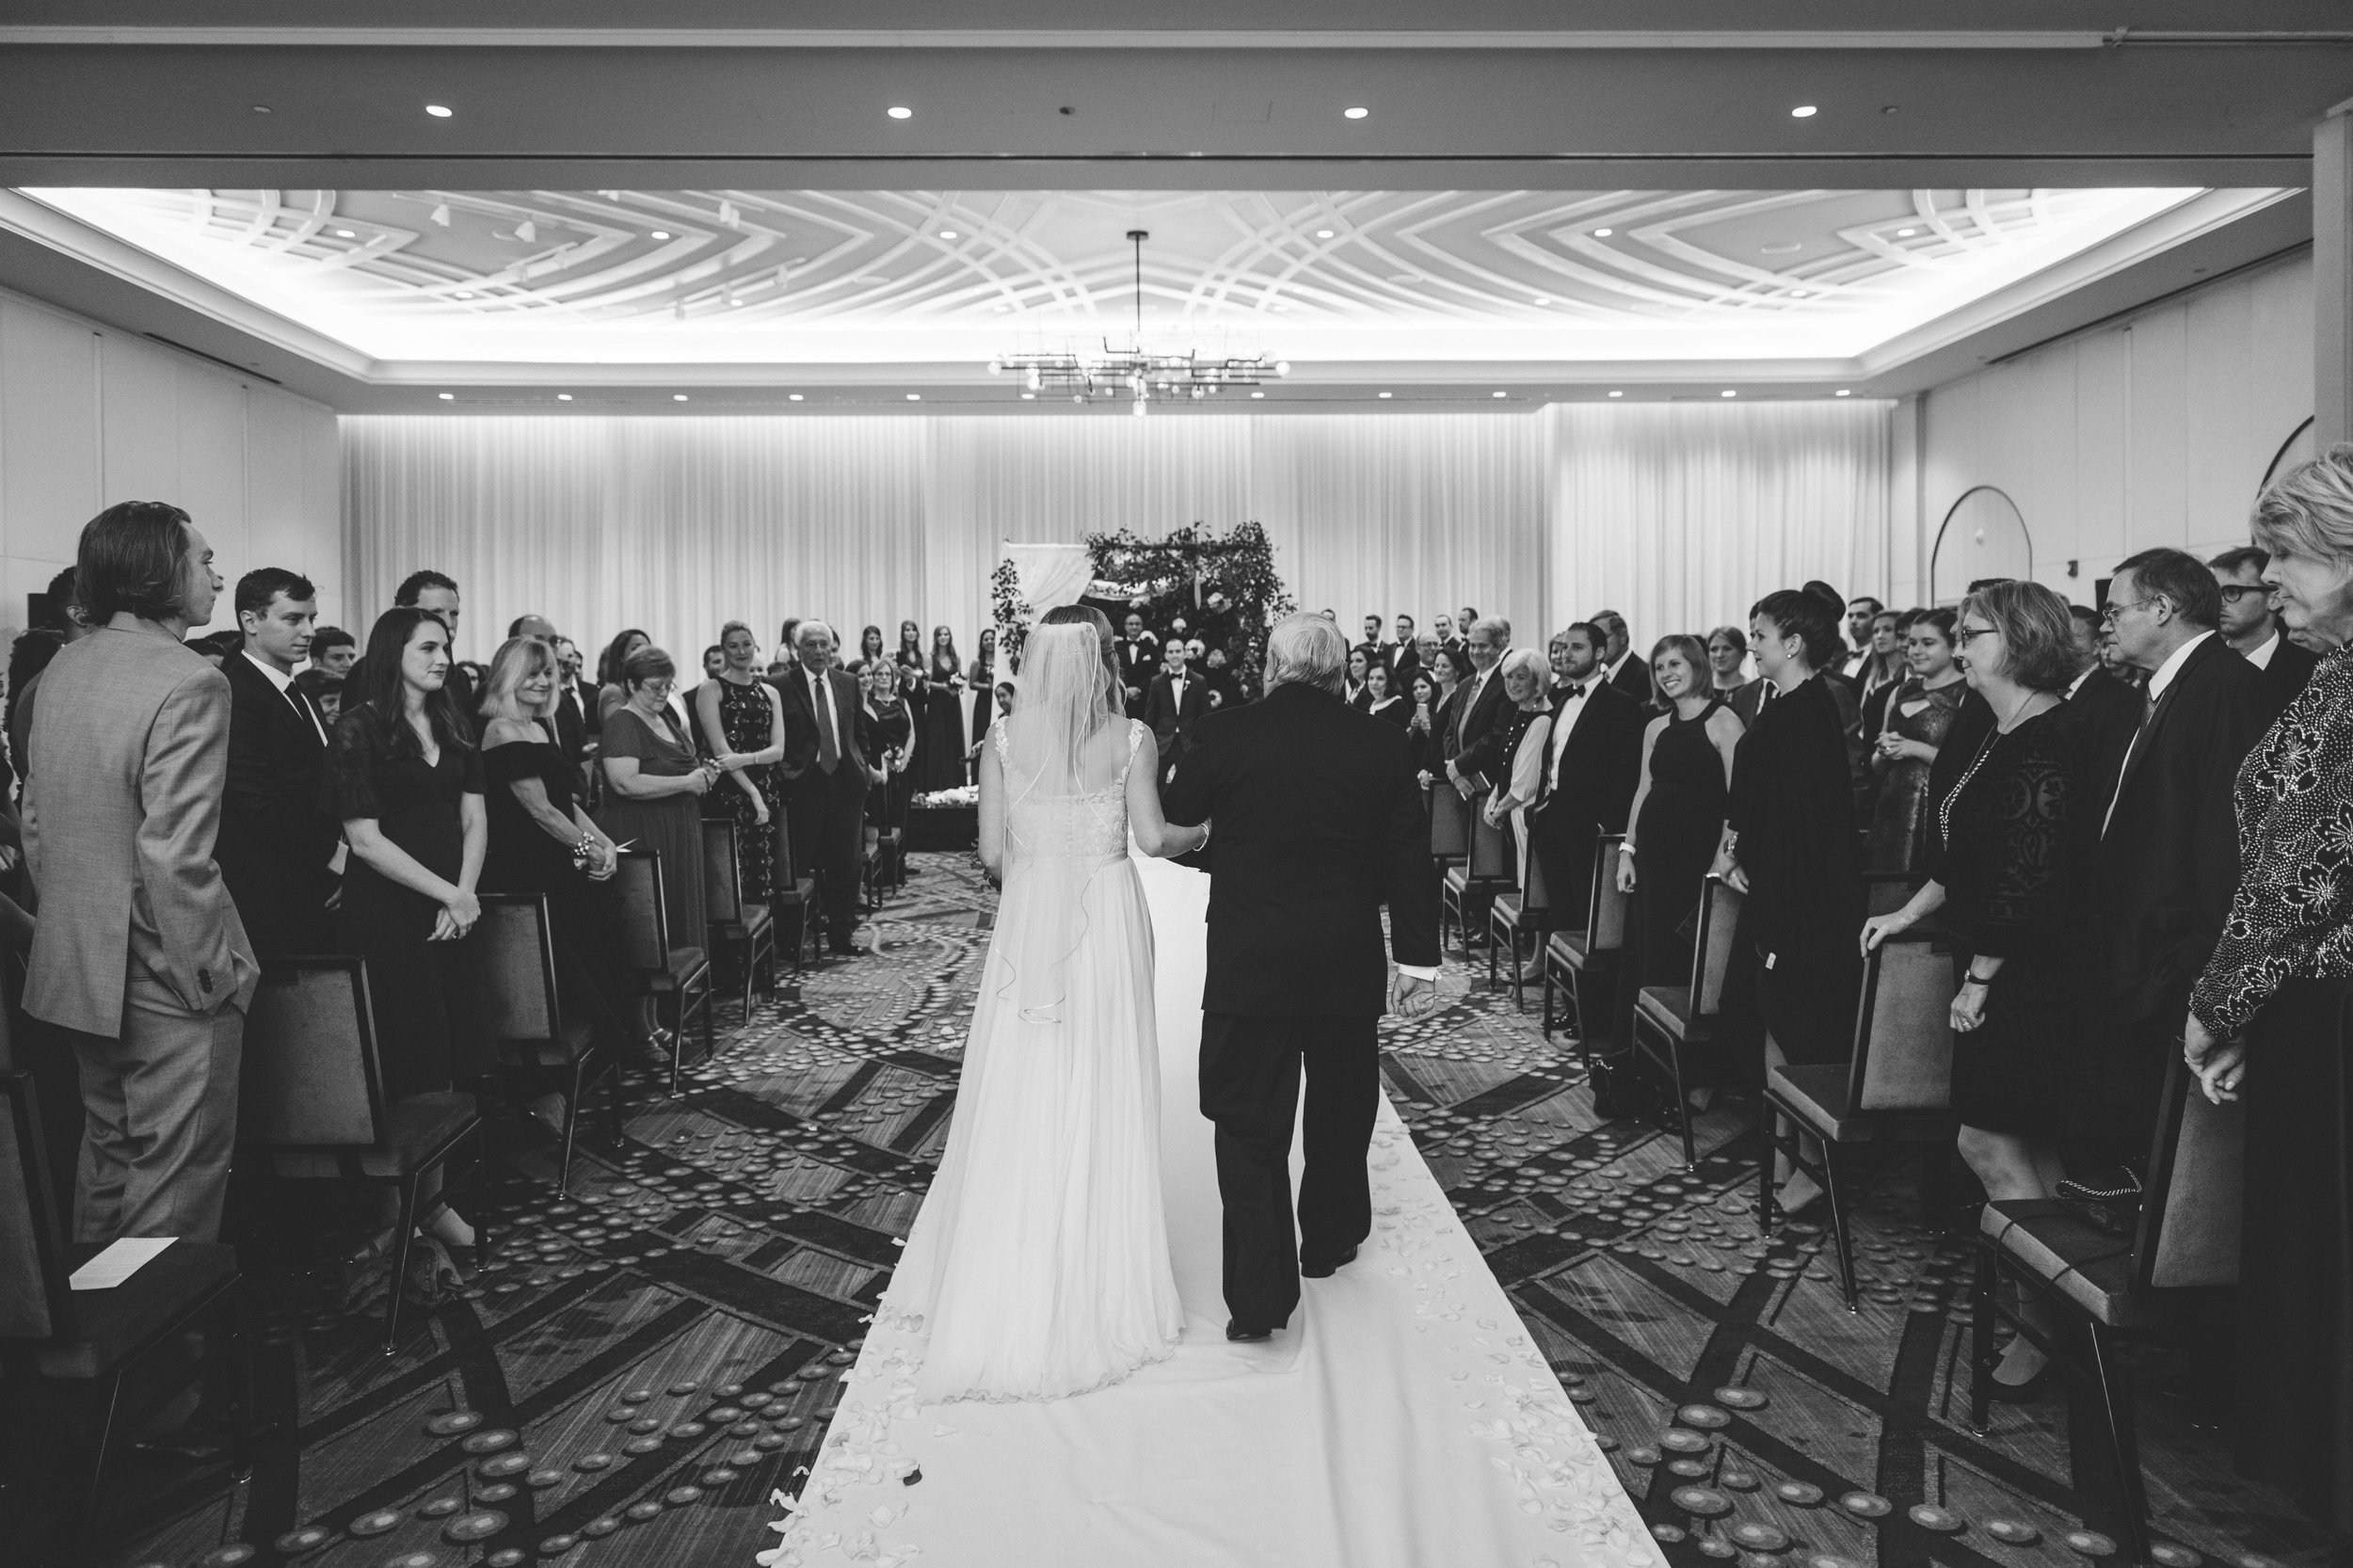 Chicago wedding-Chicago wedding planner-Chicago hotel wedding-Clover Events-Clover Events Chicago-Ed and Aileen Photography